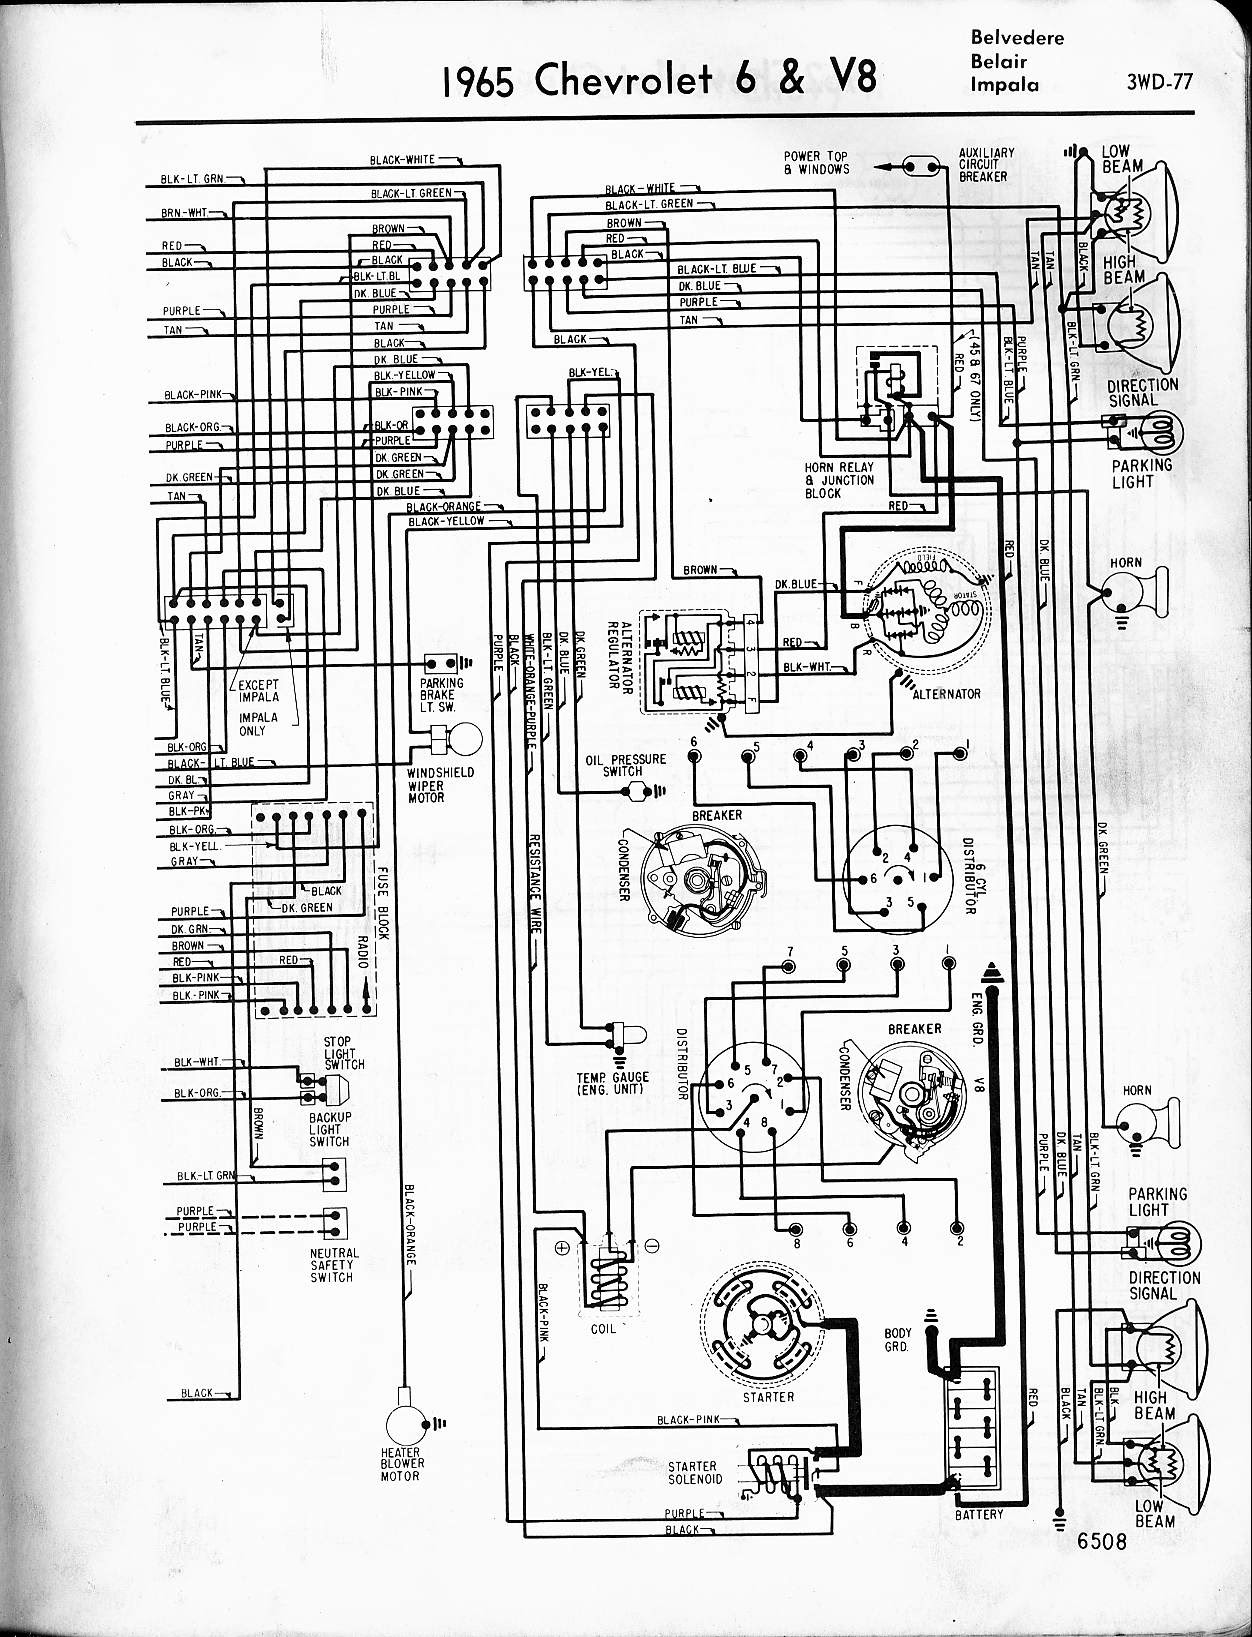 1968 Chevy Impala Wiring Diagram Schematic Wiring Diagram Correction Correction Cfcarsnoleggio It